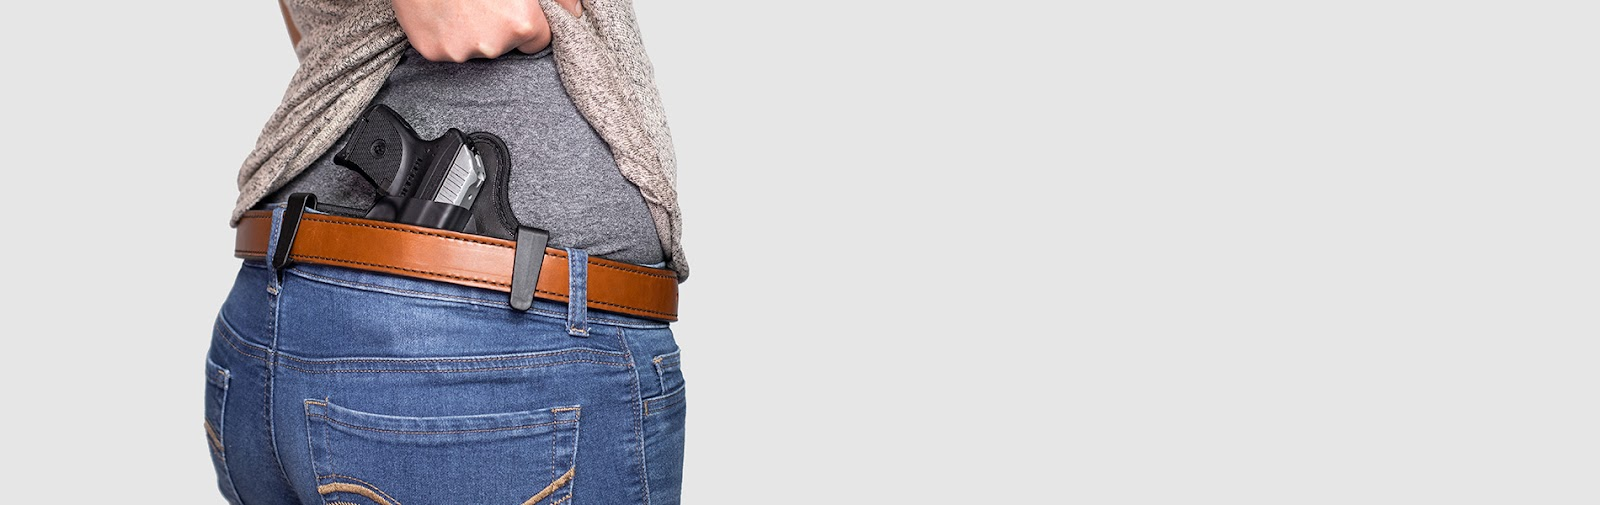 in the waistband holster for women